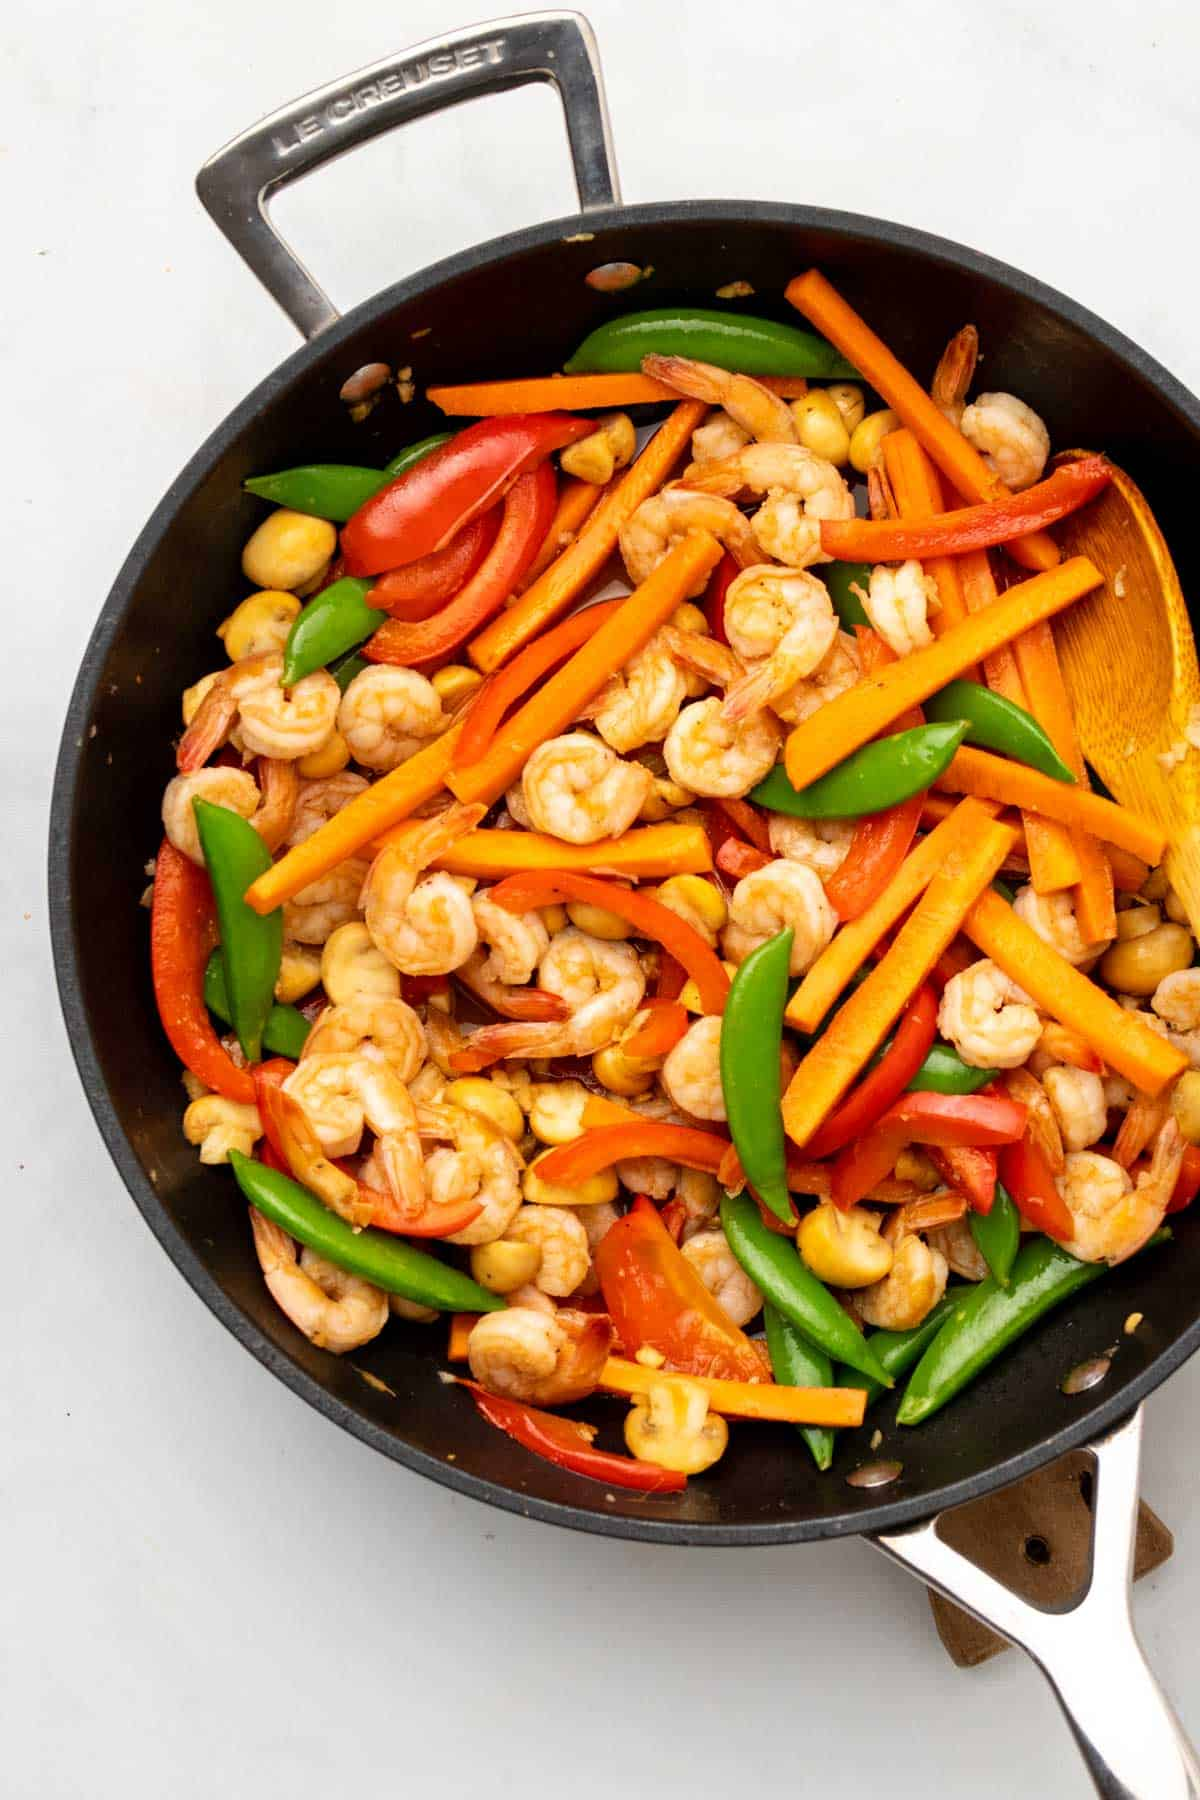 Stir fry in skillet, as seen from above